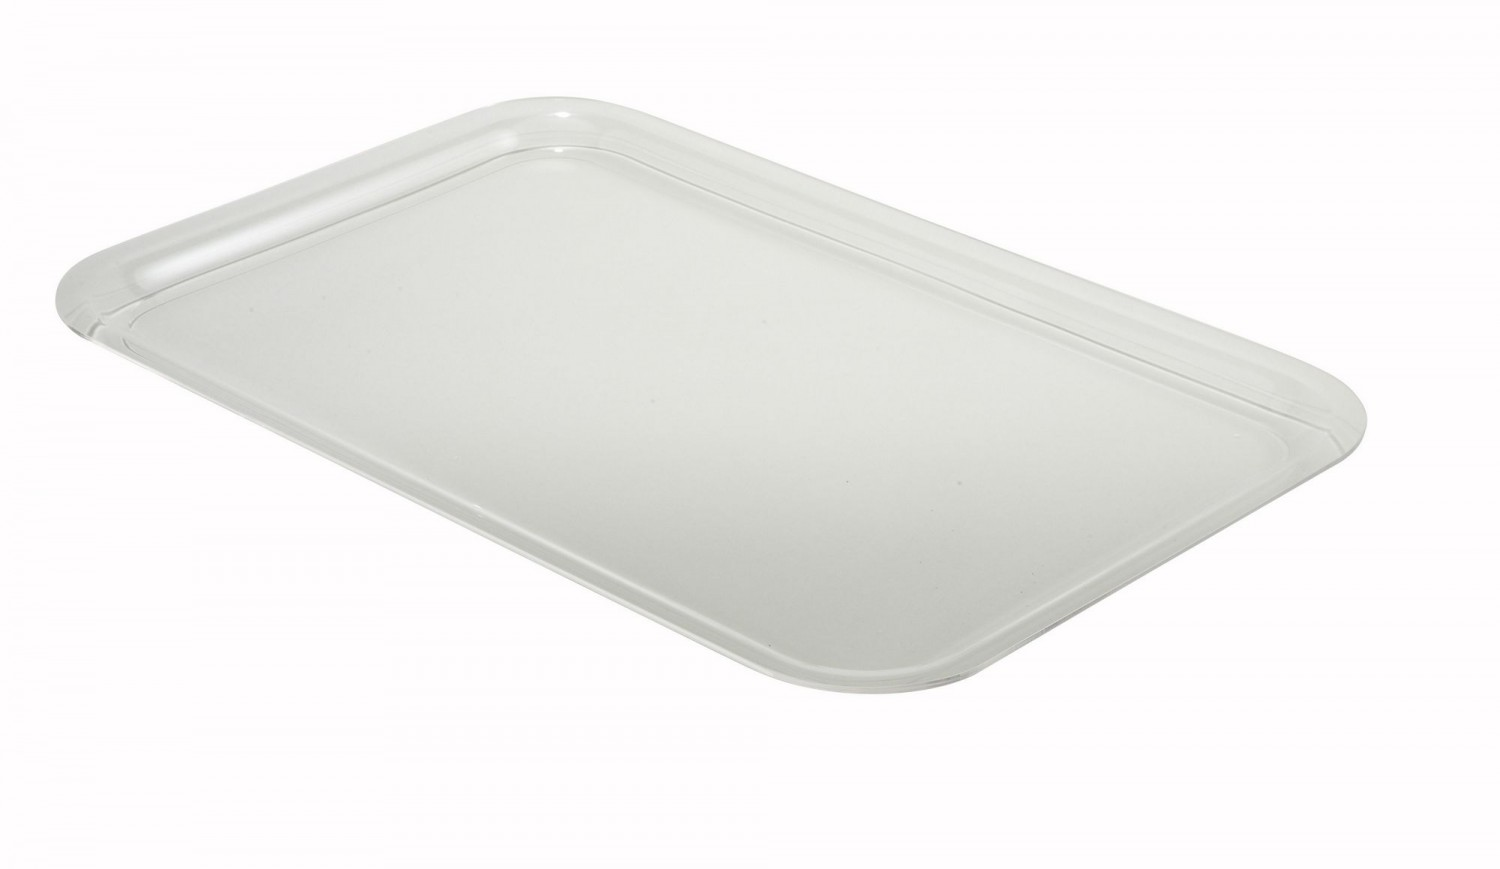 Winco ADC-TY Acrylic Tray For ADC Pastry Display Cases